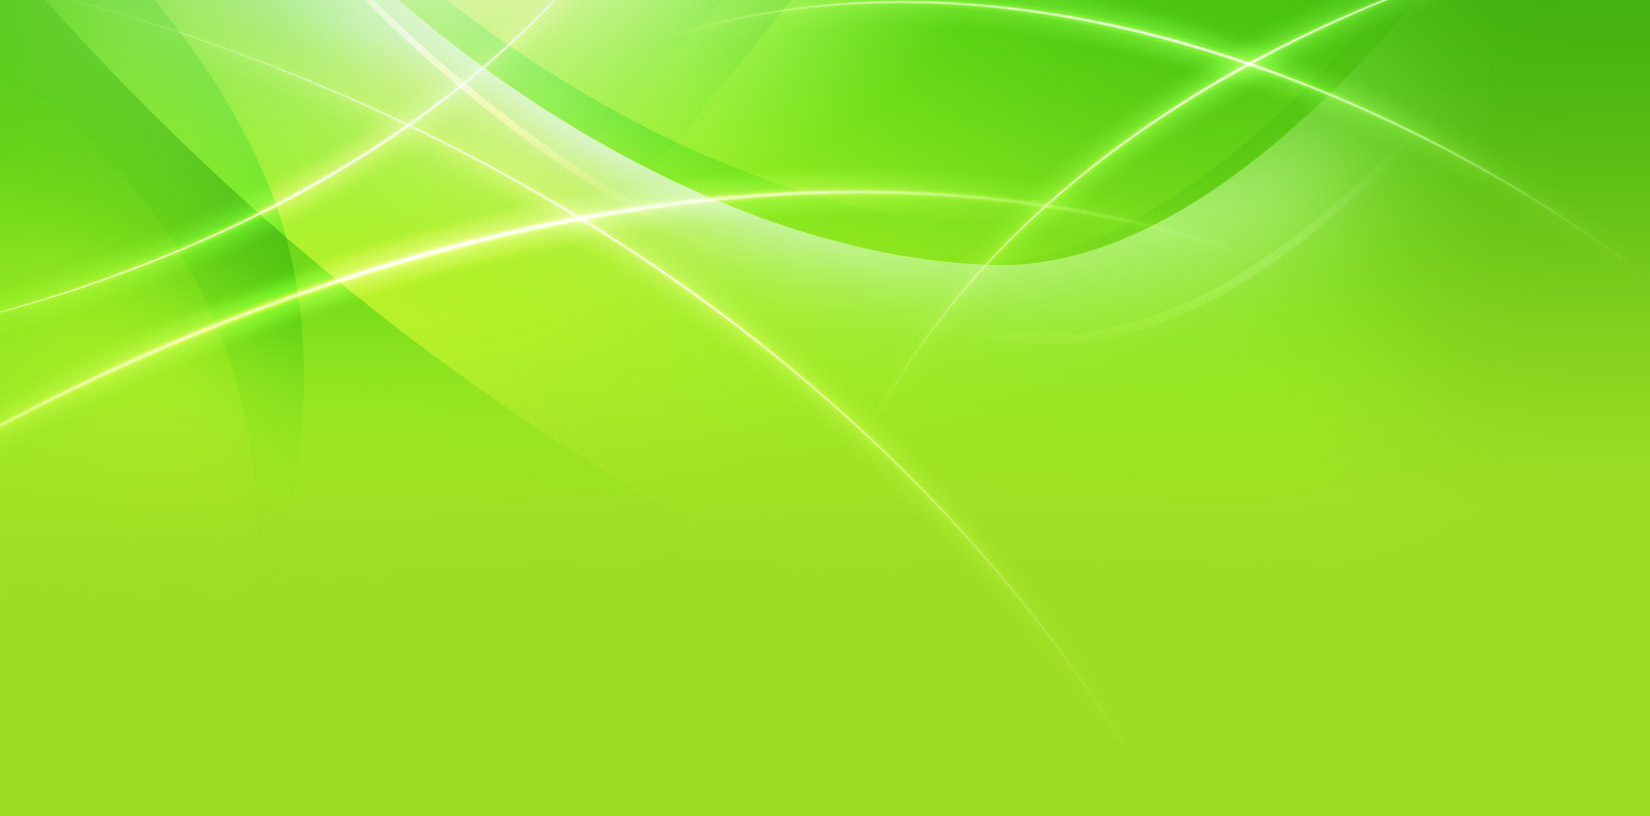 Xiaomi Redmi Note 5 Pro Wallpaper With Abstract Blue Light: Green Background 01